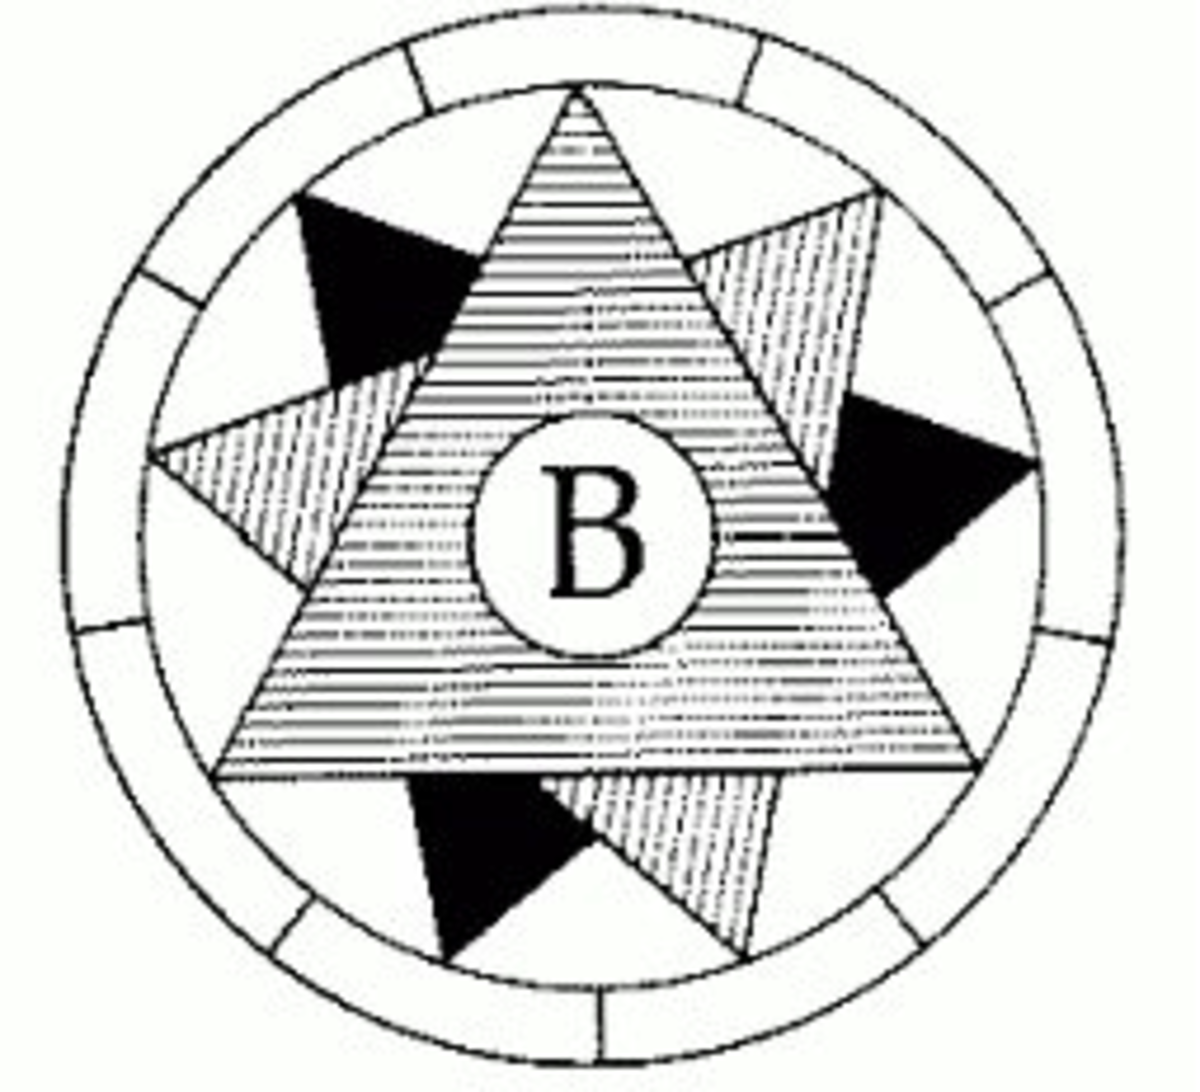 llullian-enneagram-ramon-llull-dr-illuminatus-the-first-father-of-the-enneagram-of-personality